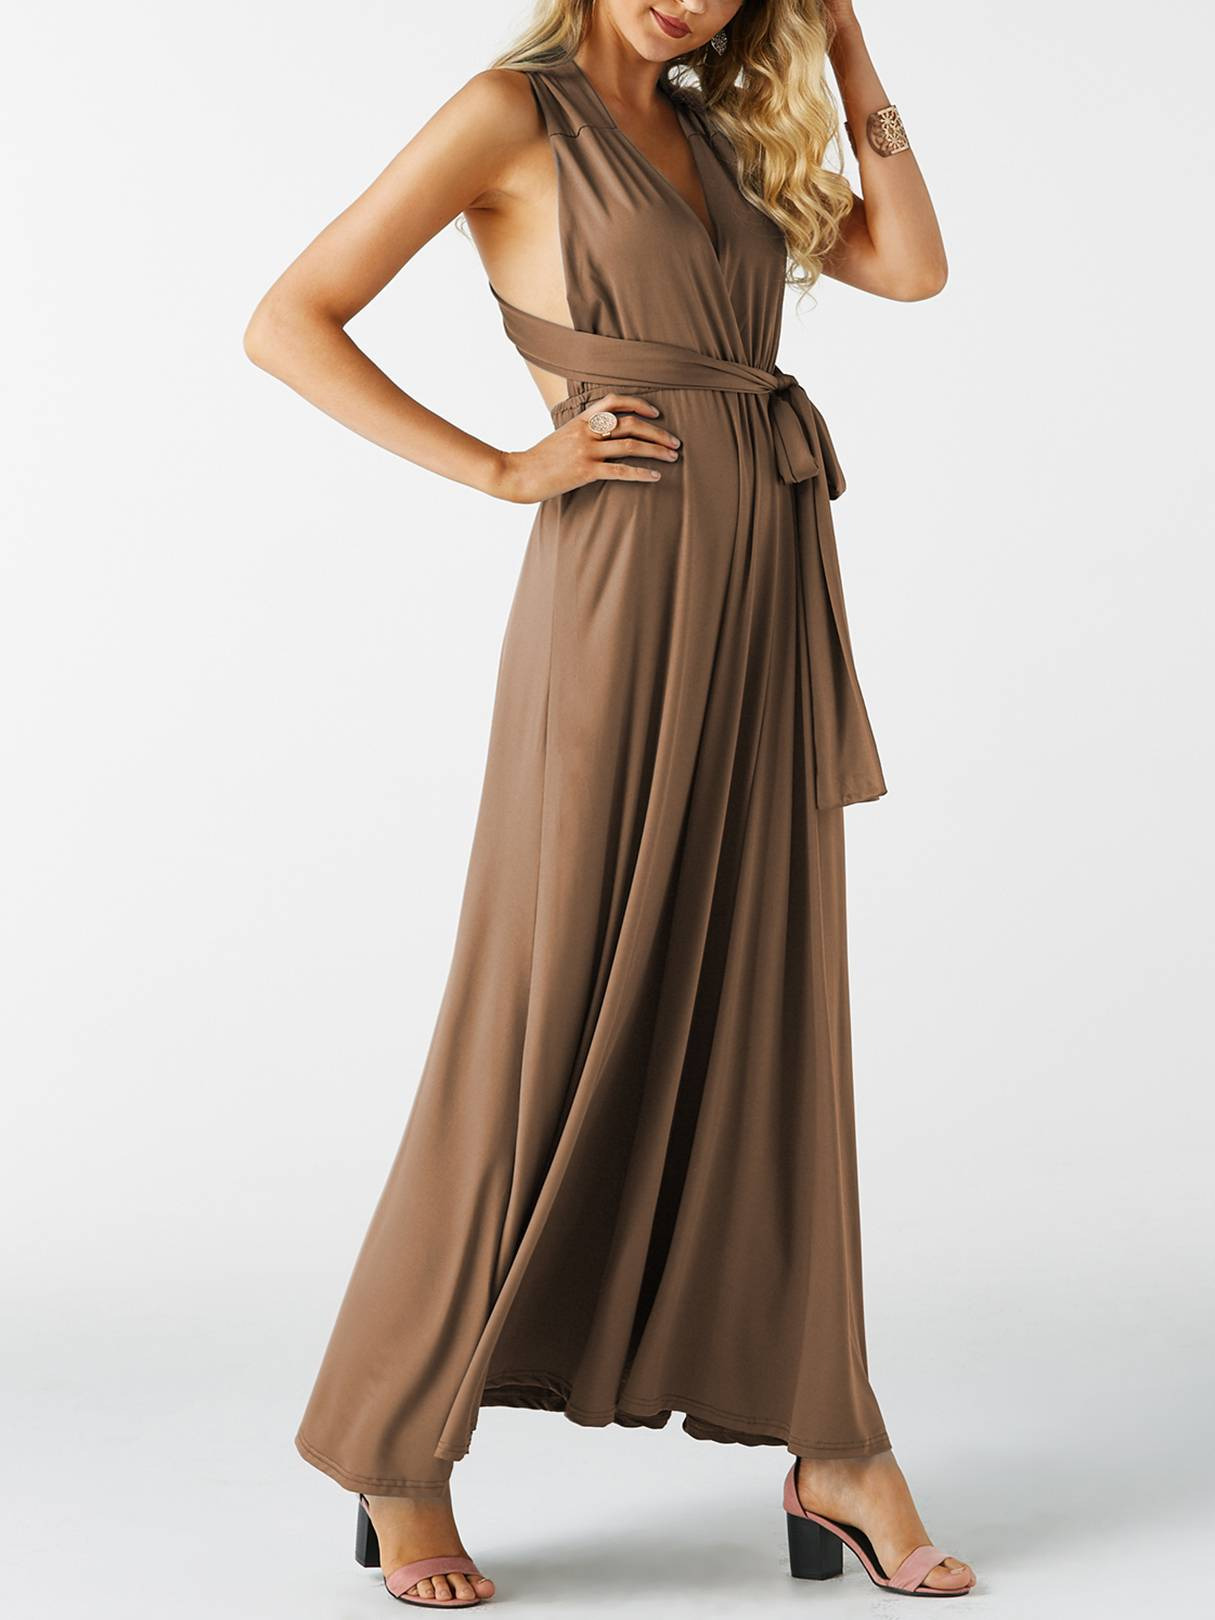 Image of Yoins Brown Multi-way Lace-up Design Long Sexy Party Dress